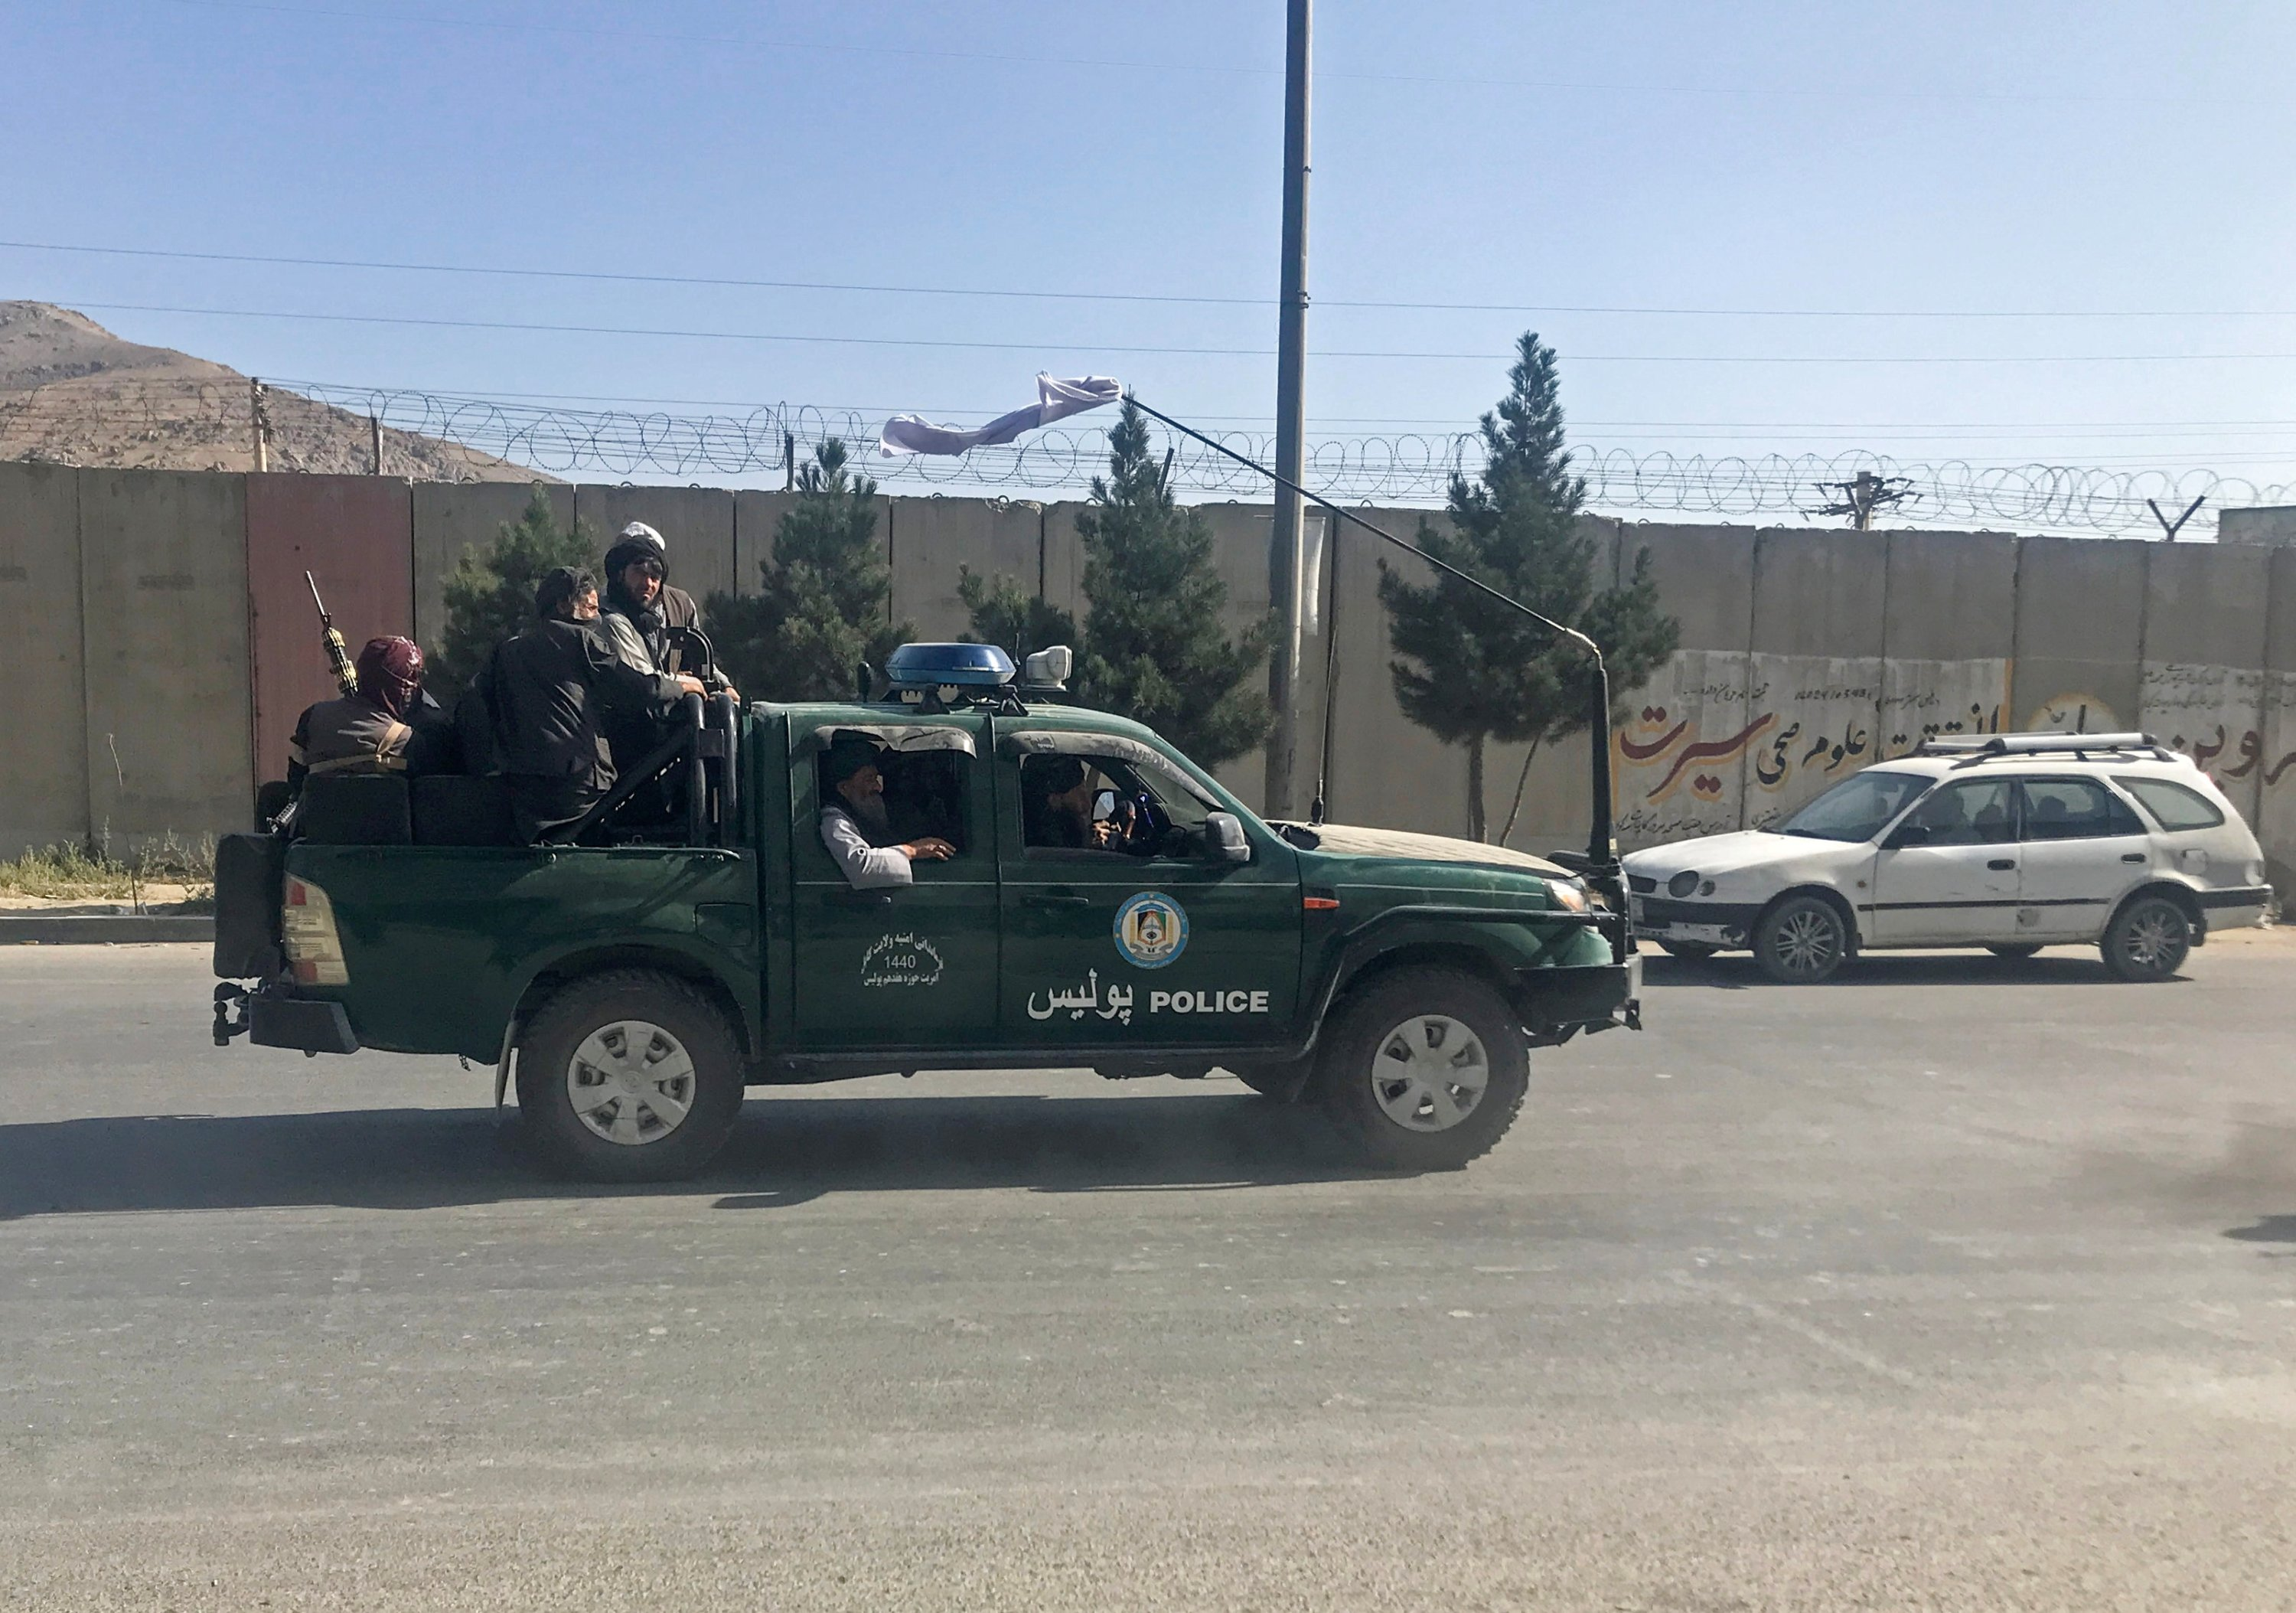 Taliban fighters ride on a police vehicle in Kabul, Afghanistan, Aug. 16, 2021. (REUTERS Photo)